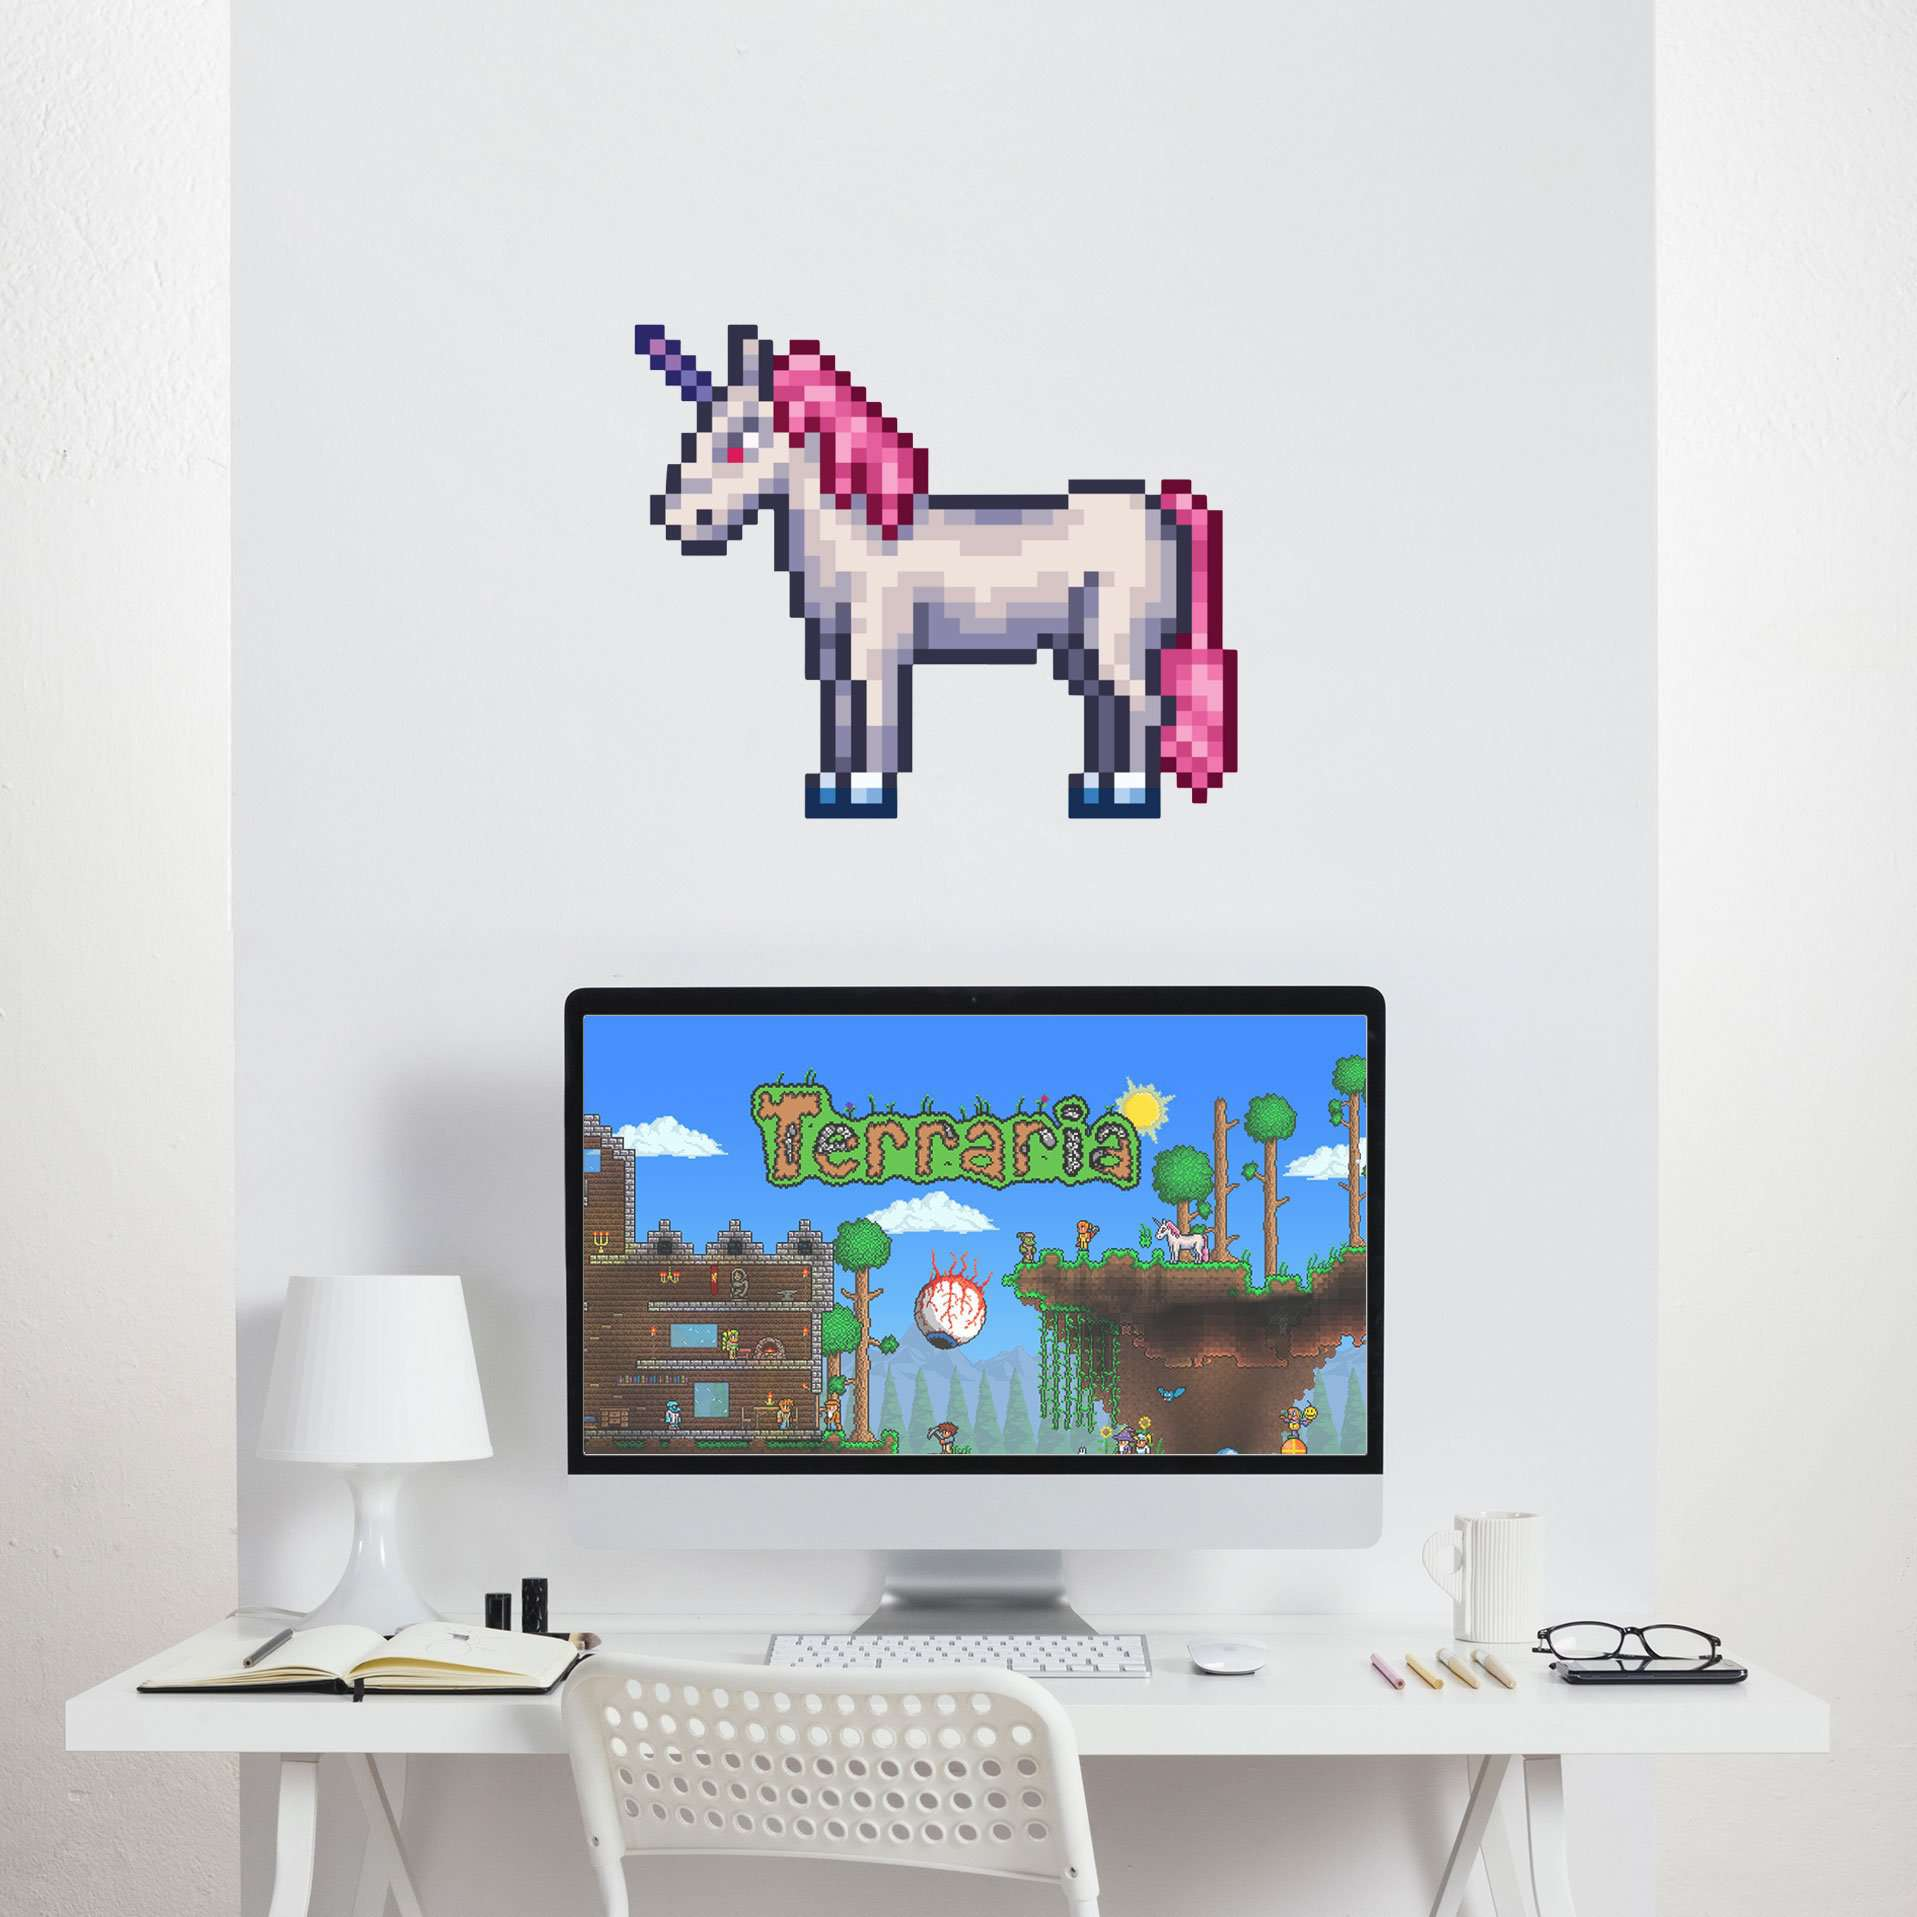 Terraria Wall Decal Set Party Decorations Video Game Background - How to put up a large wall sticker